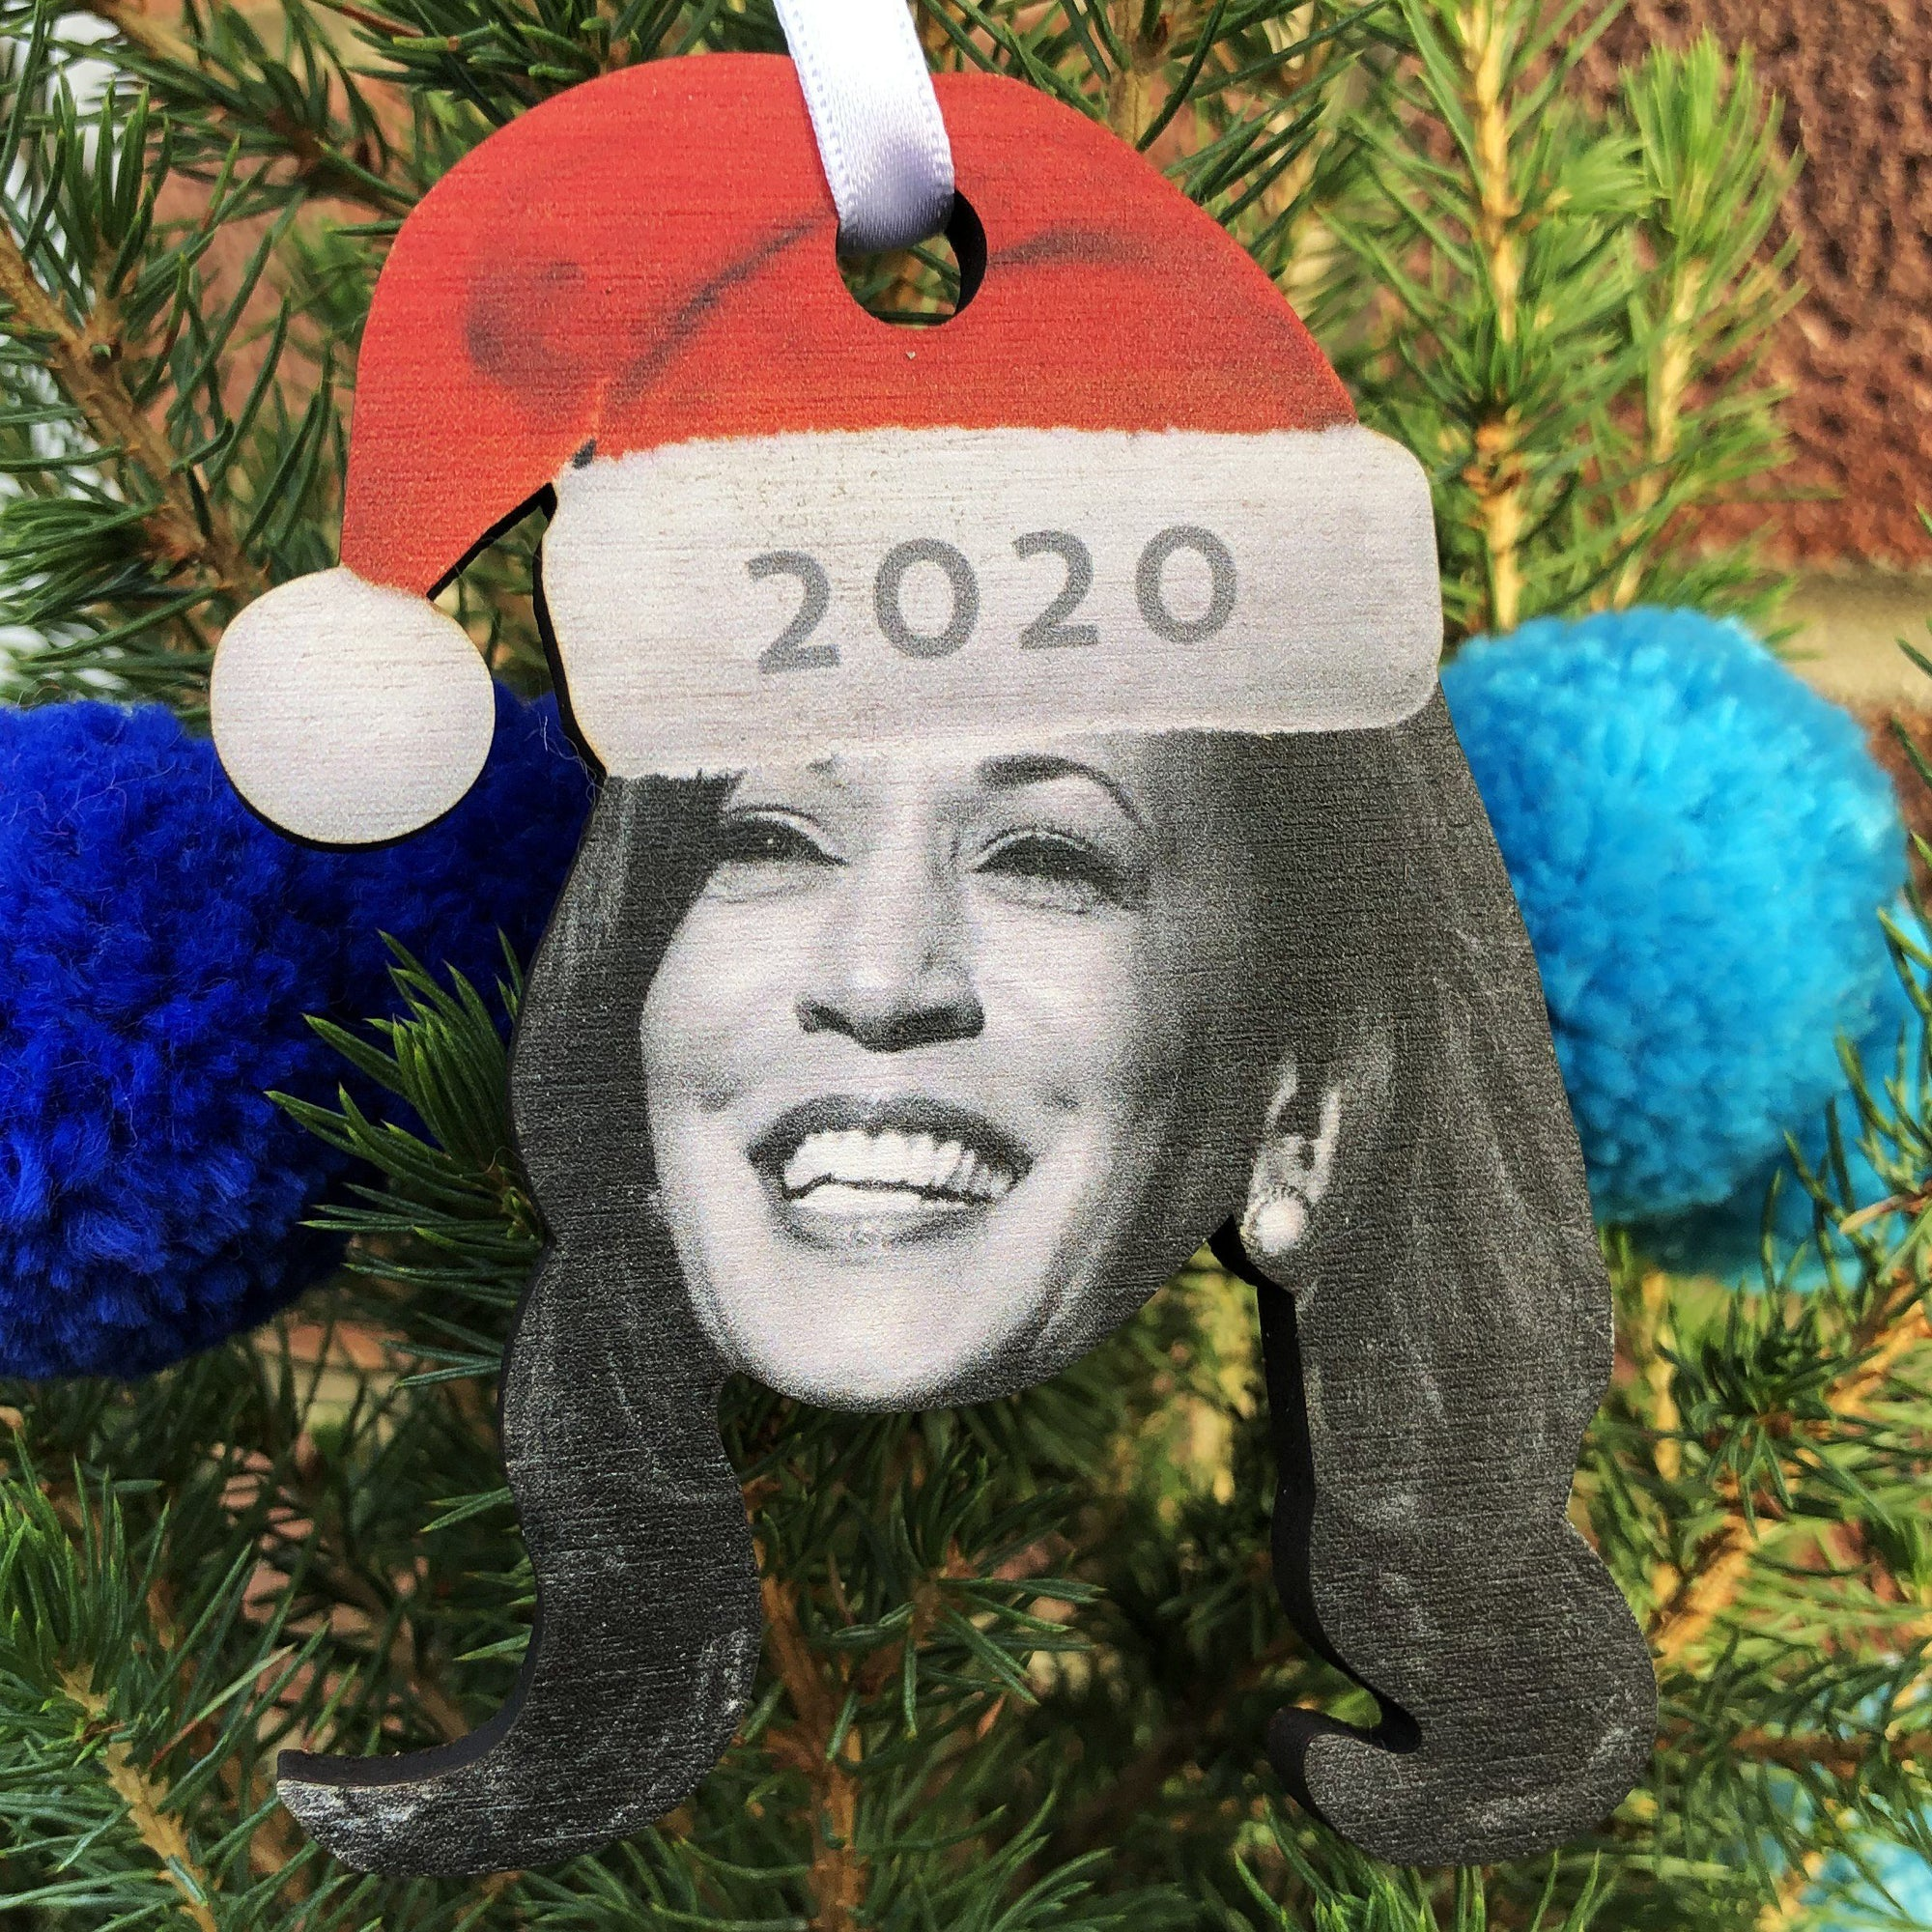 Kamala Harris 2020 Christmas Tree Ornament-Betsy Benn